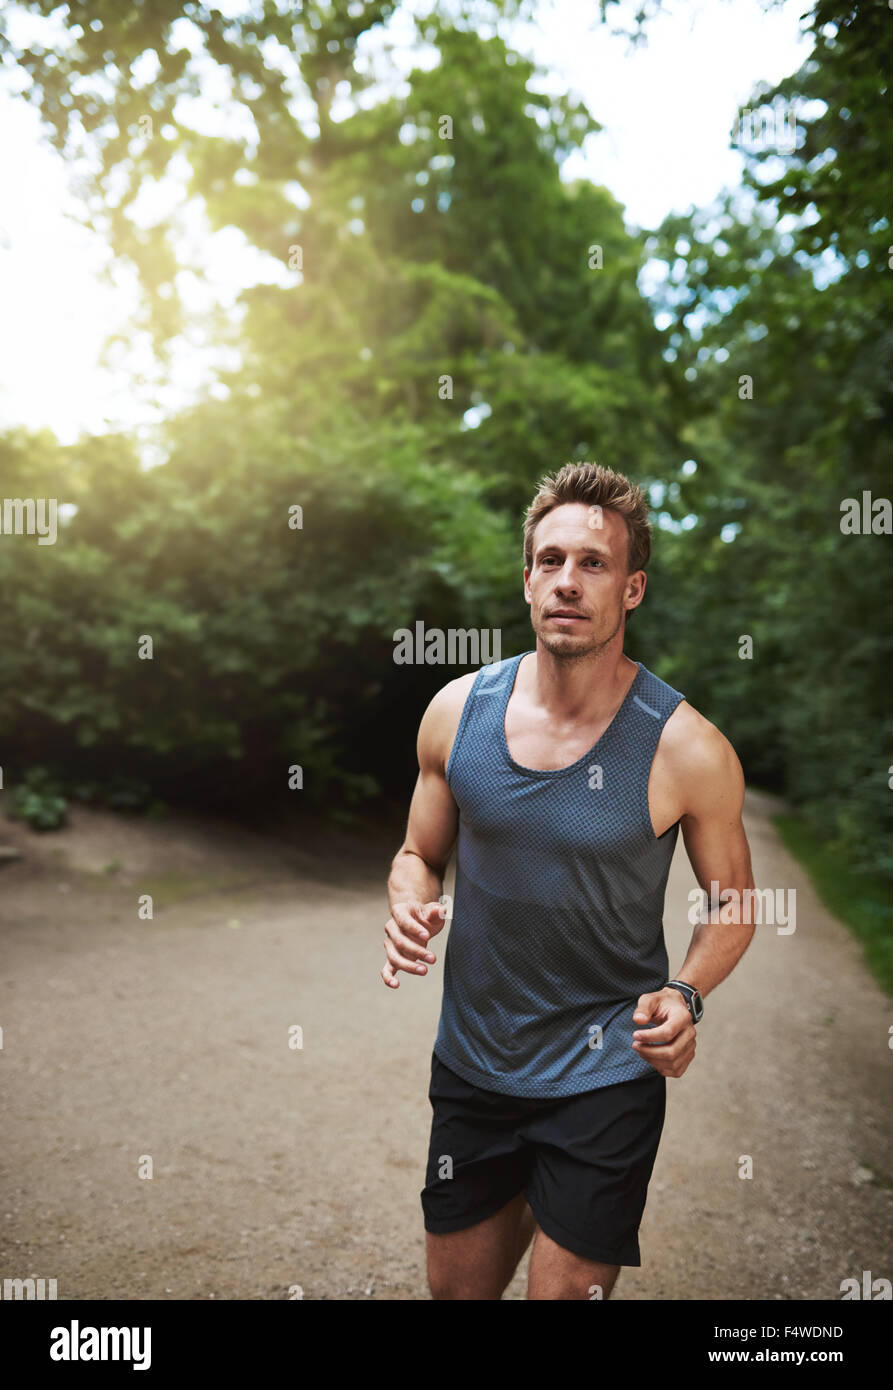 Athletic fit male jogger running through a wooded park towards the camera with a look of concentration and determination, - Stock Image